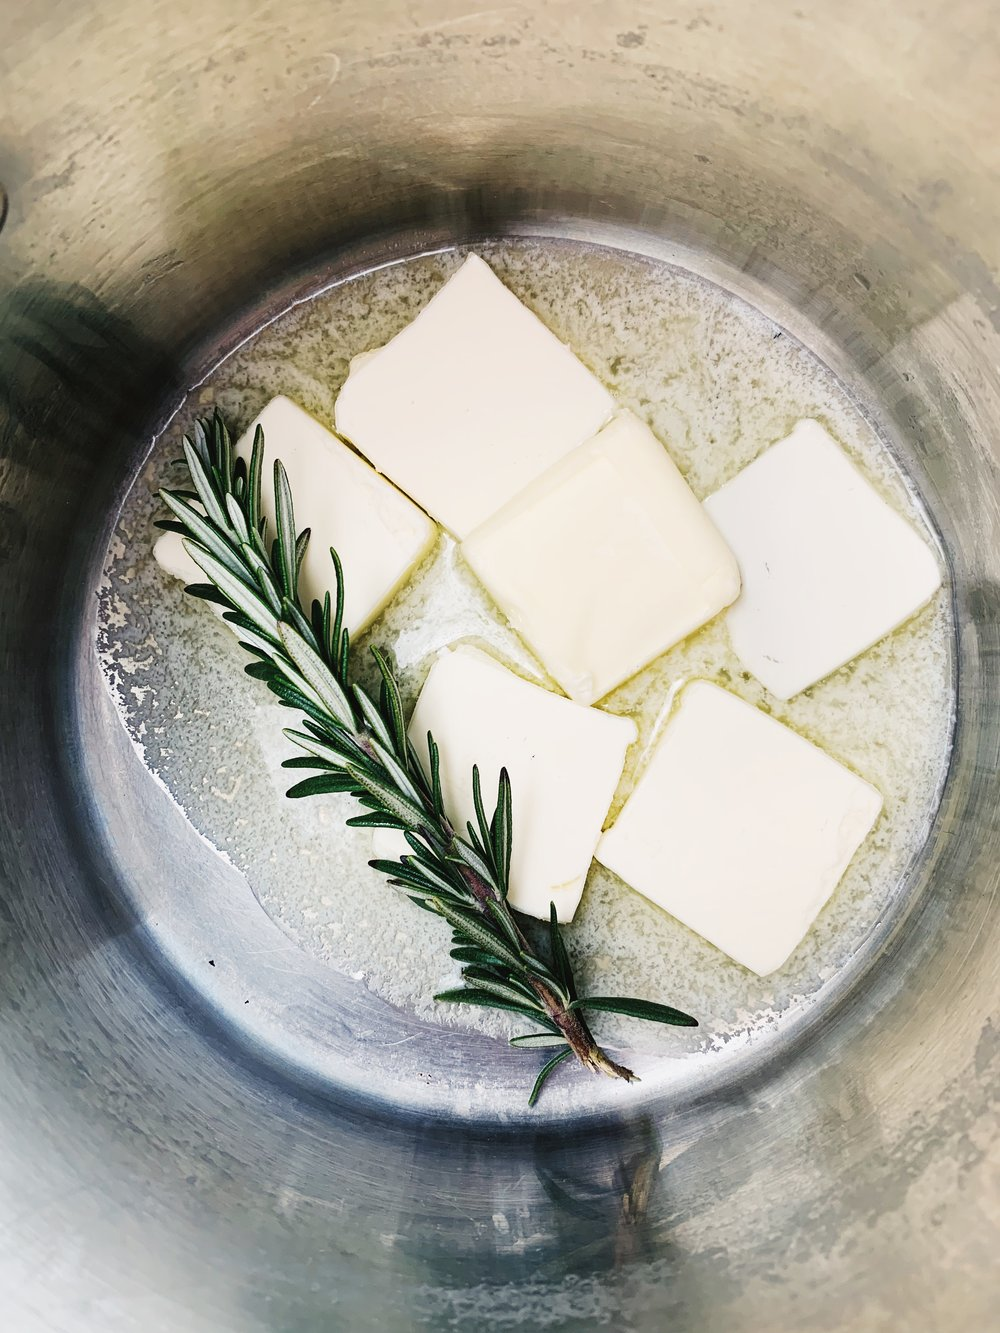 Rosemary + butter = YAS!